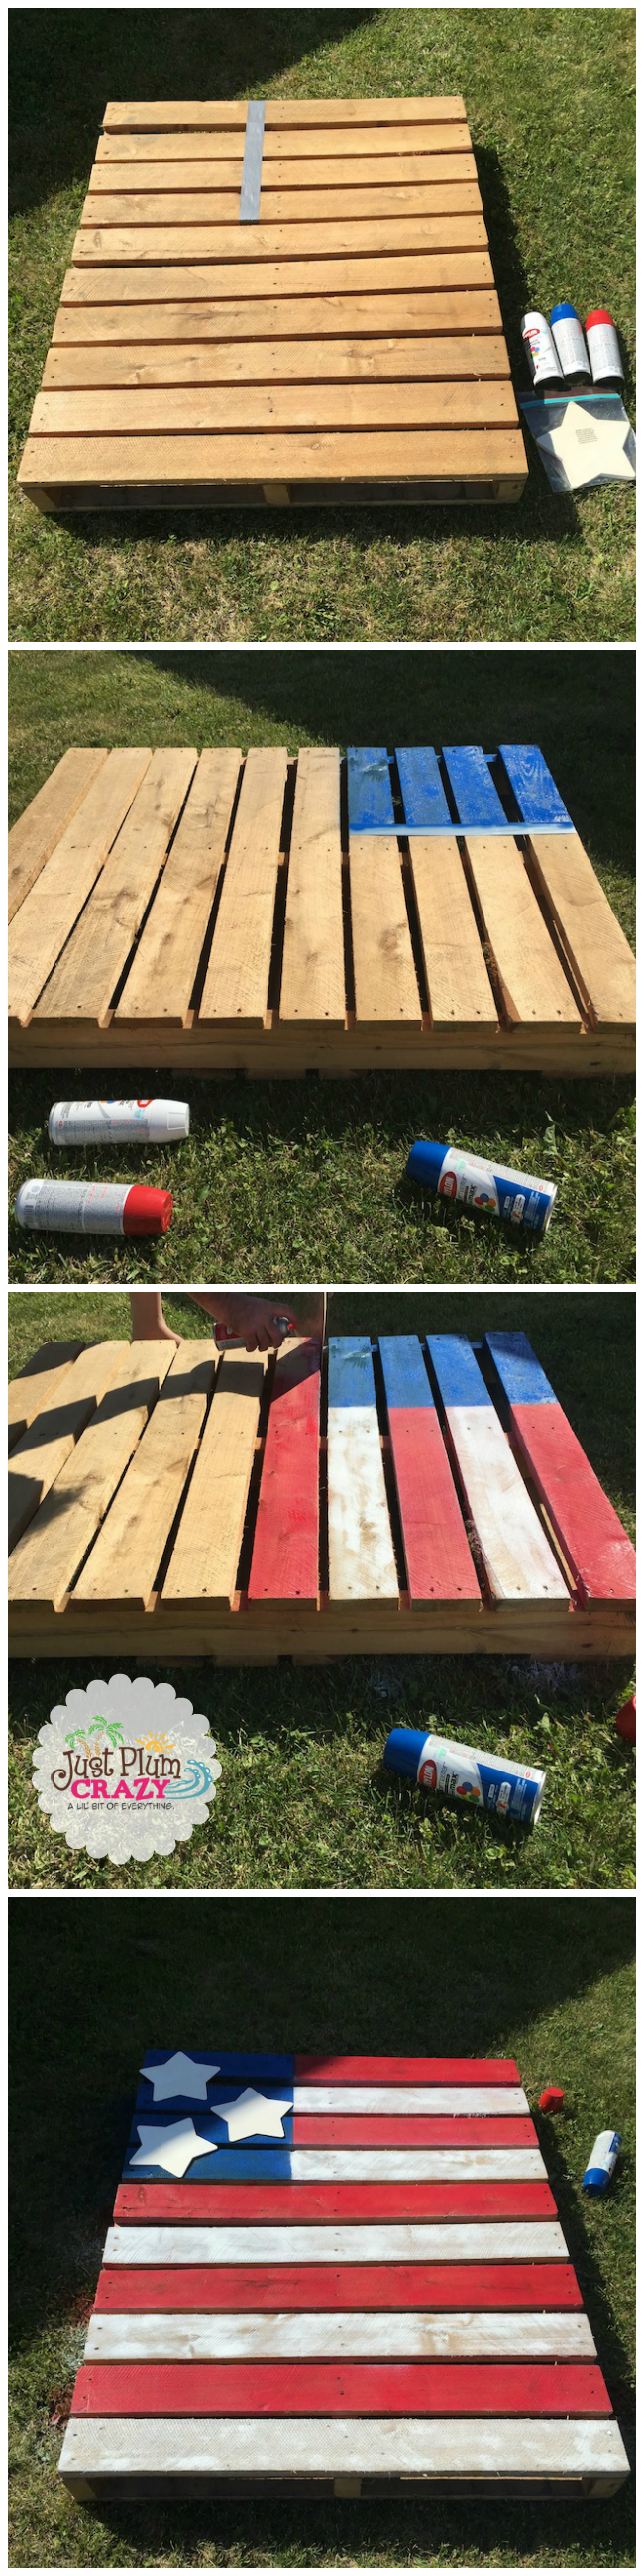 One thing that helps me to relax is doing crafts. Making a DIY 4th of July Pallet Flag wouldn't take me that long. I had some help from hubby & Snapple Tea.